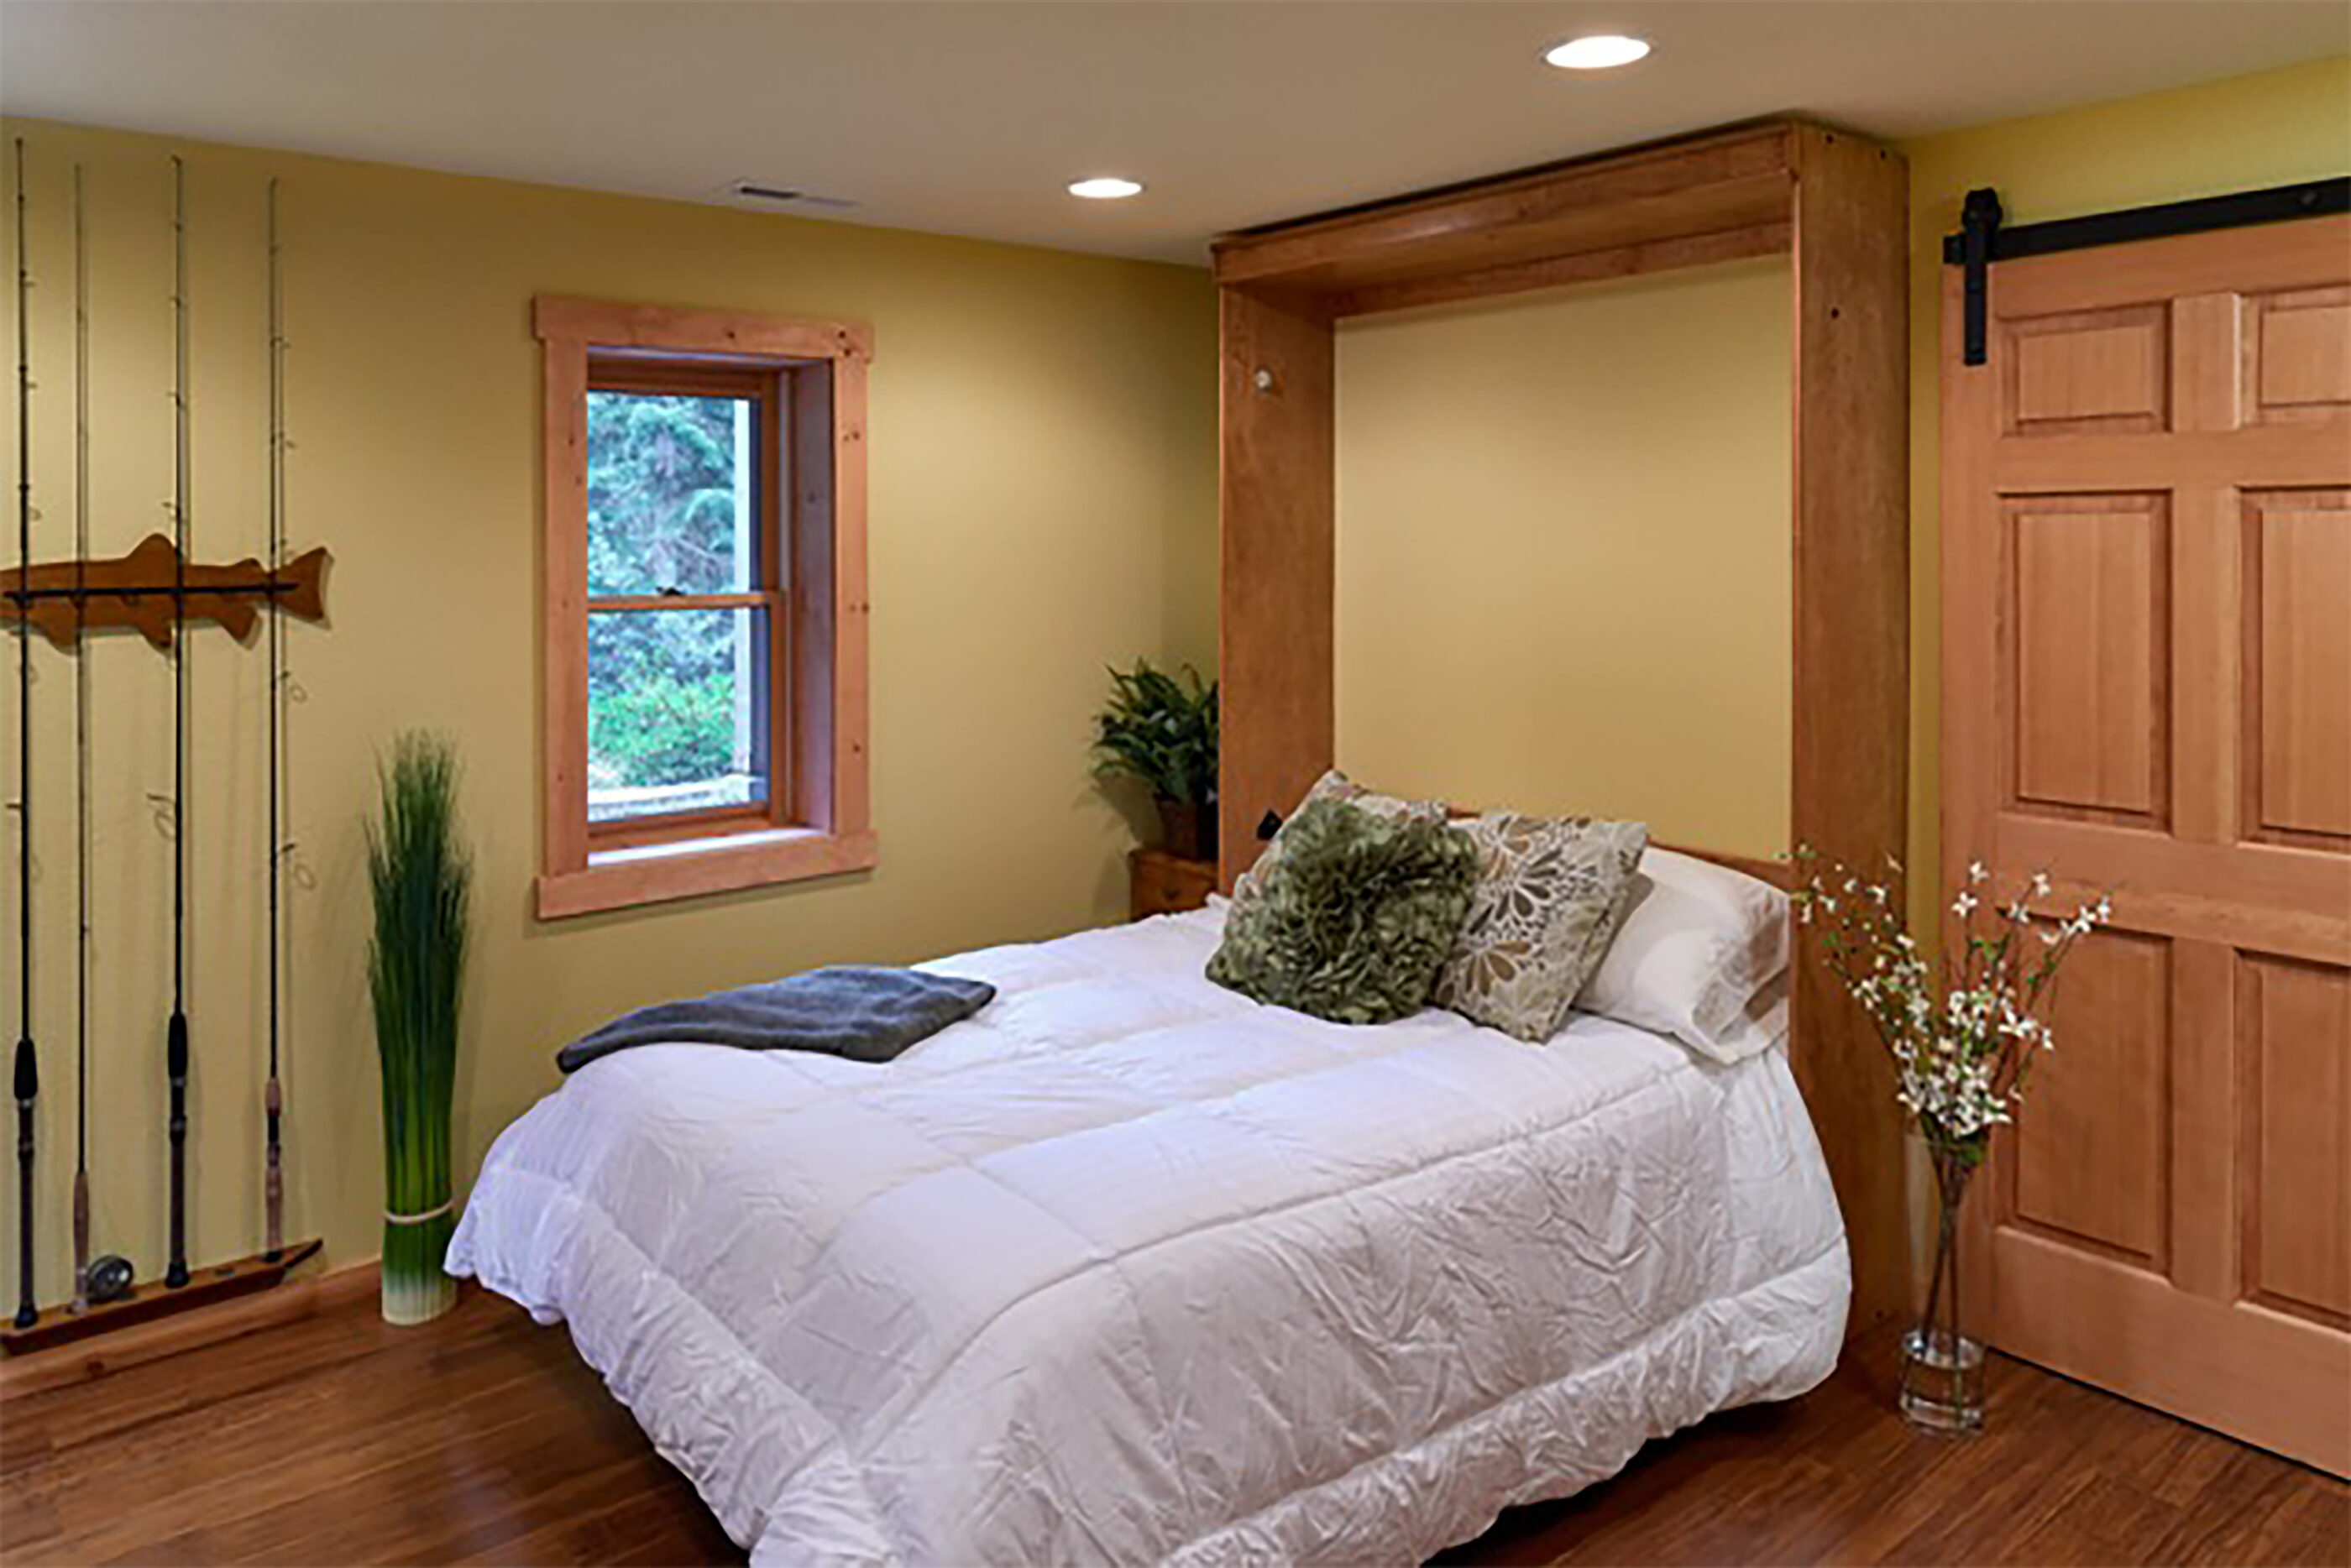 A murphy bed folds down when guests come to visit.